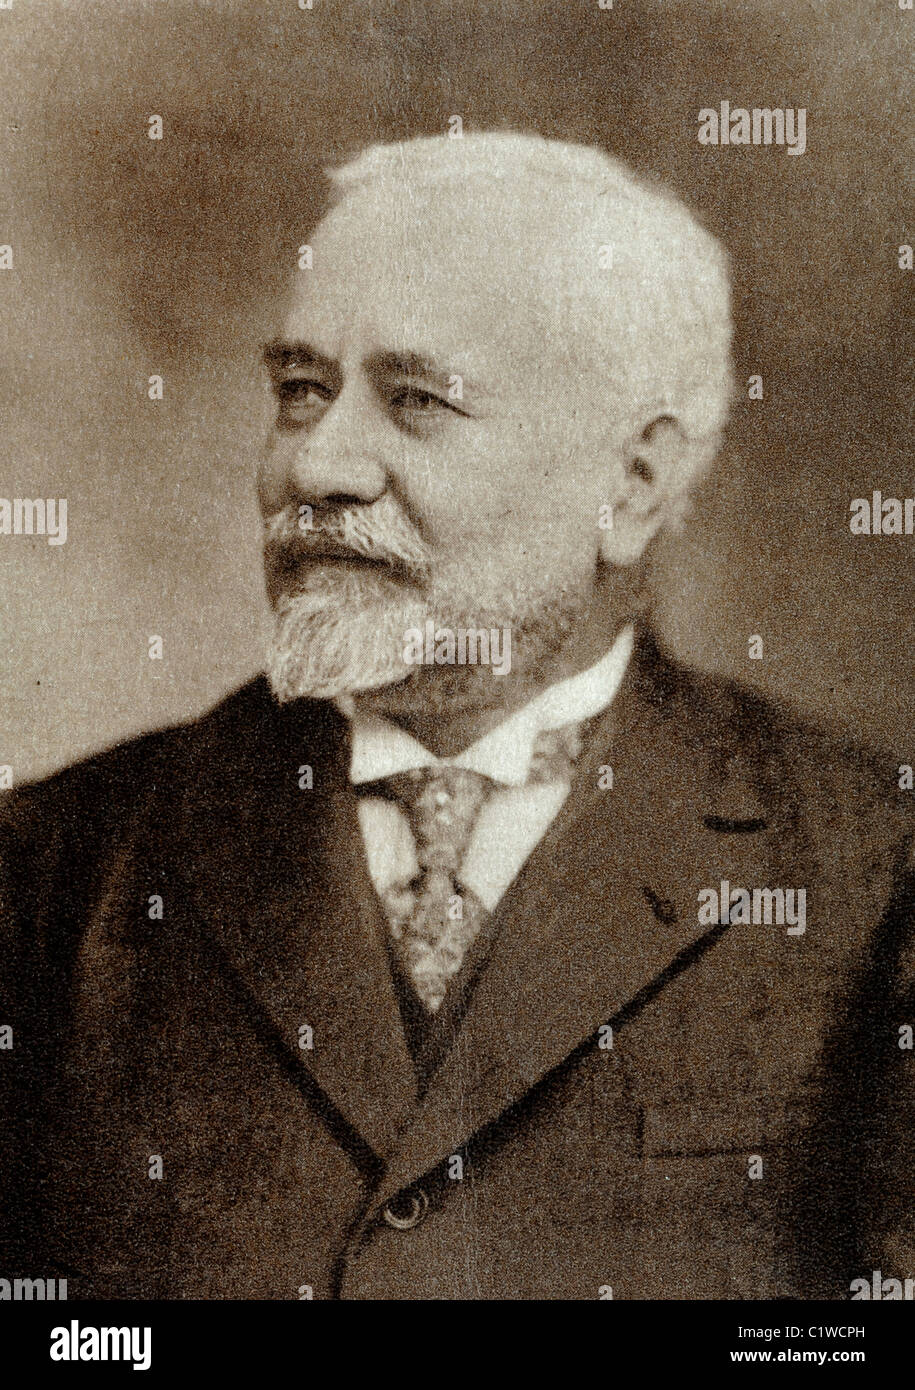 Albert Calmette (1863-1933) French Doctor, Physician, Bacteriologist & Immunologist - Stock Image